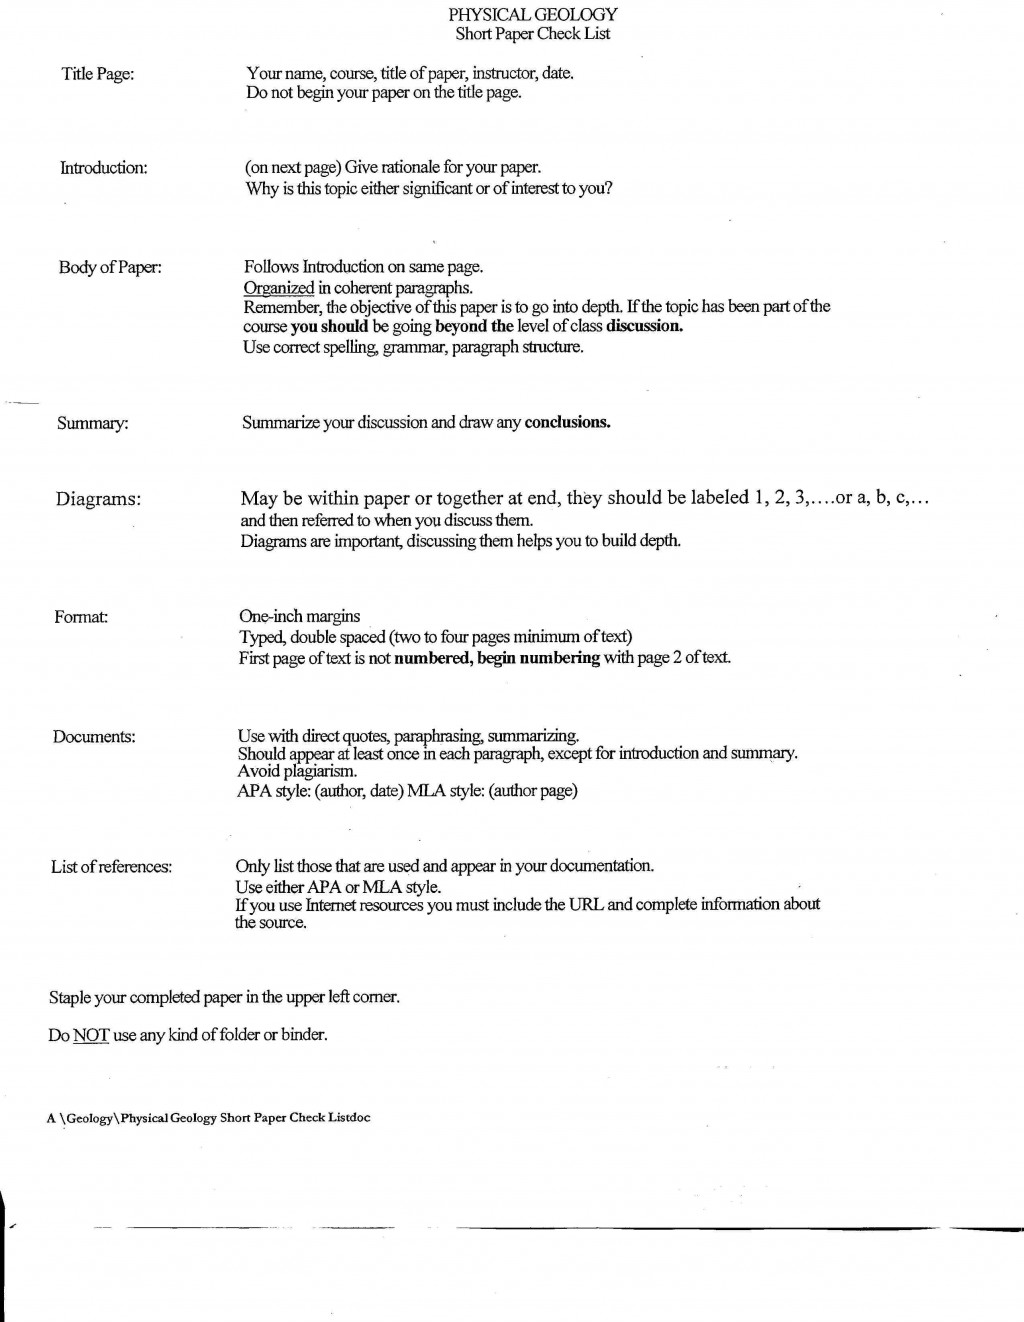 010 Environmental Chemistry Research Paper Topics Short Checklist Rare Large